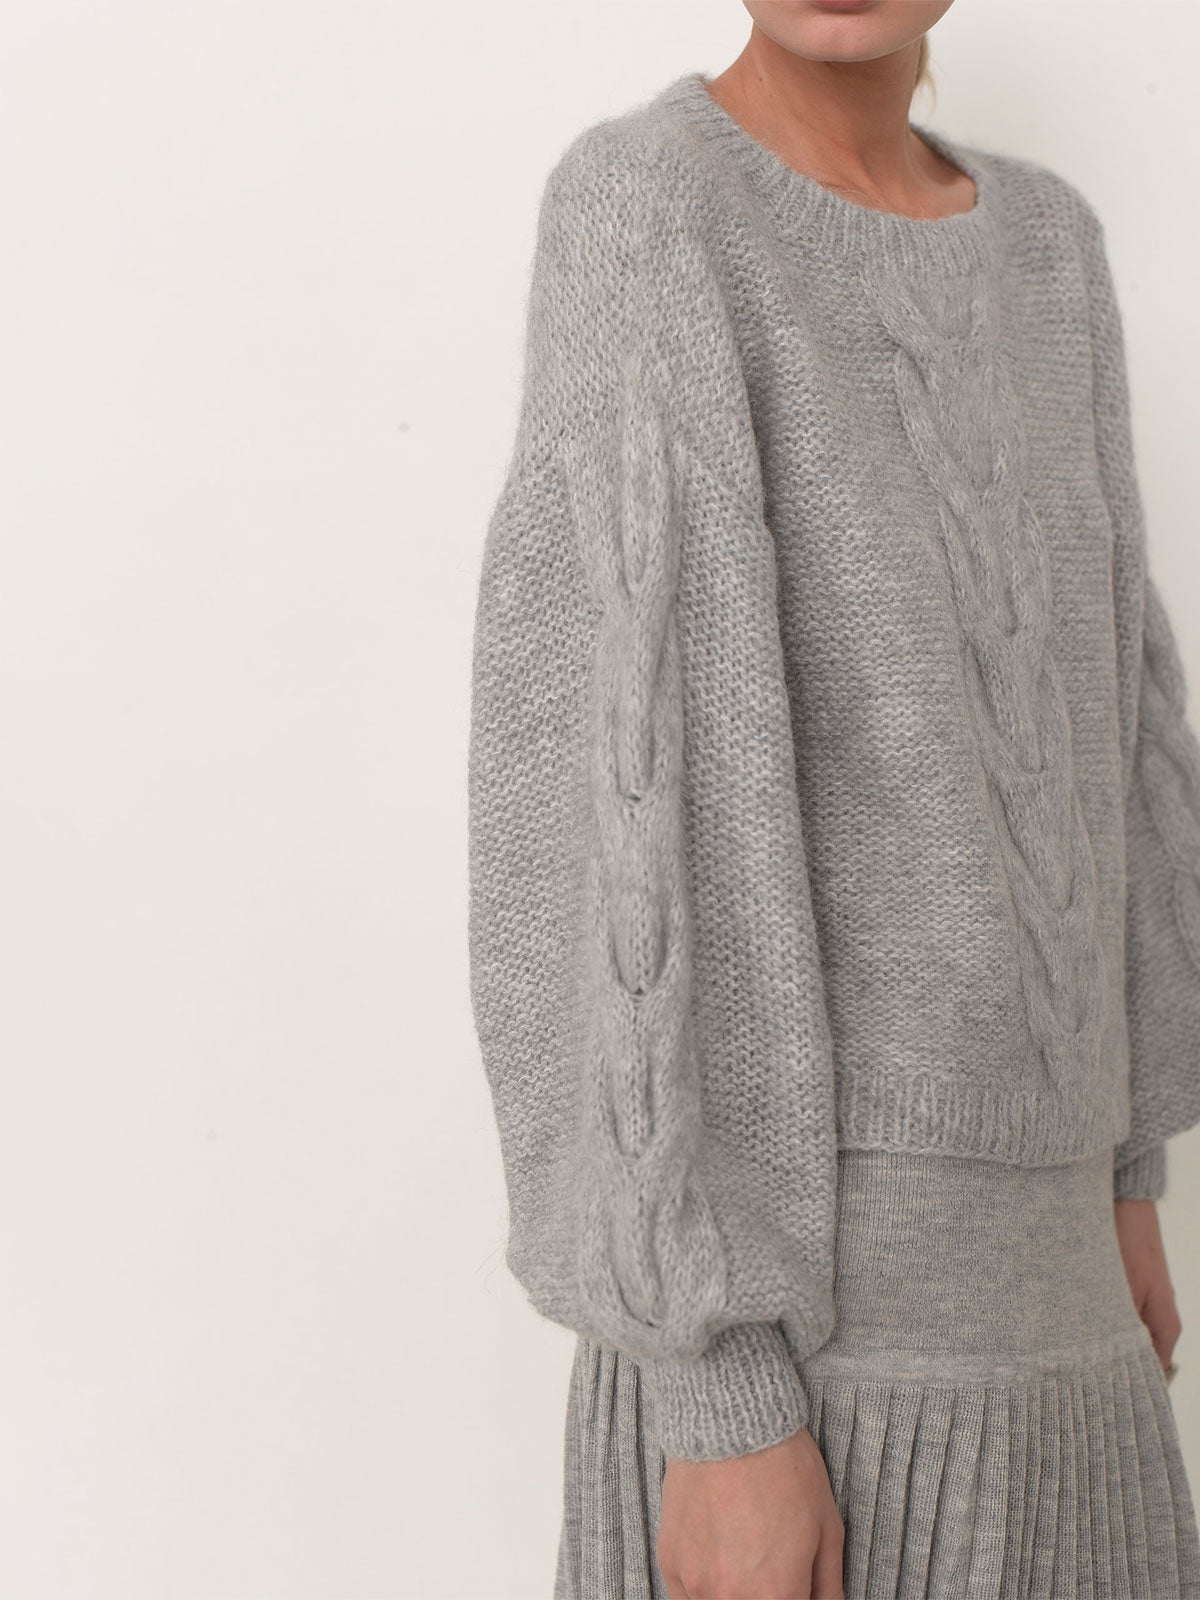 Sophia Sweater | Pale Grey